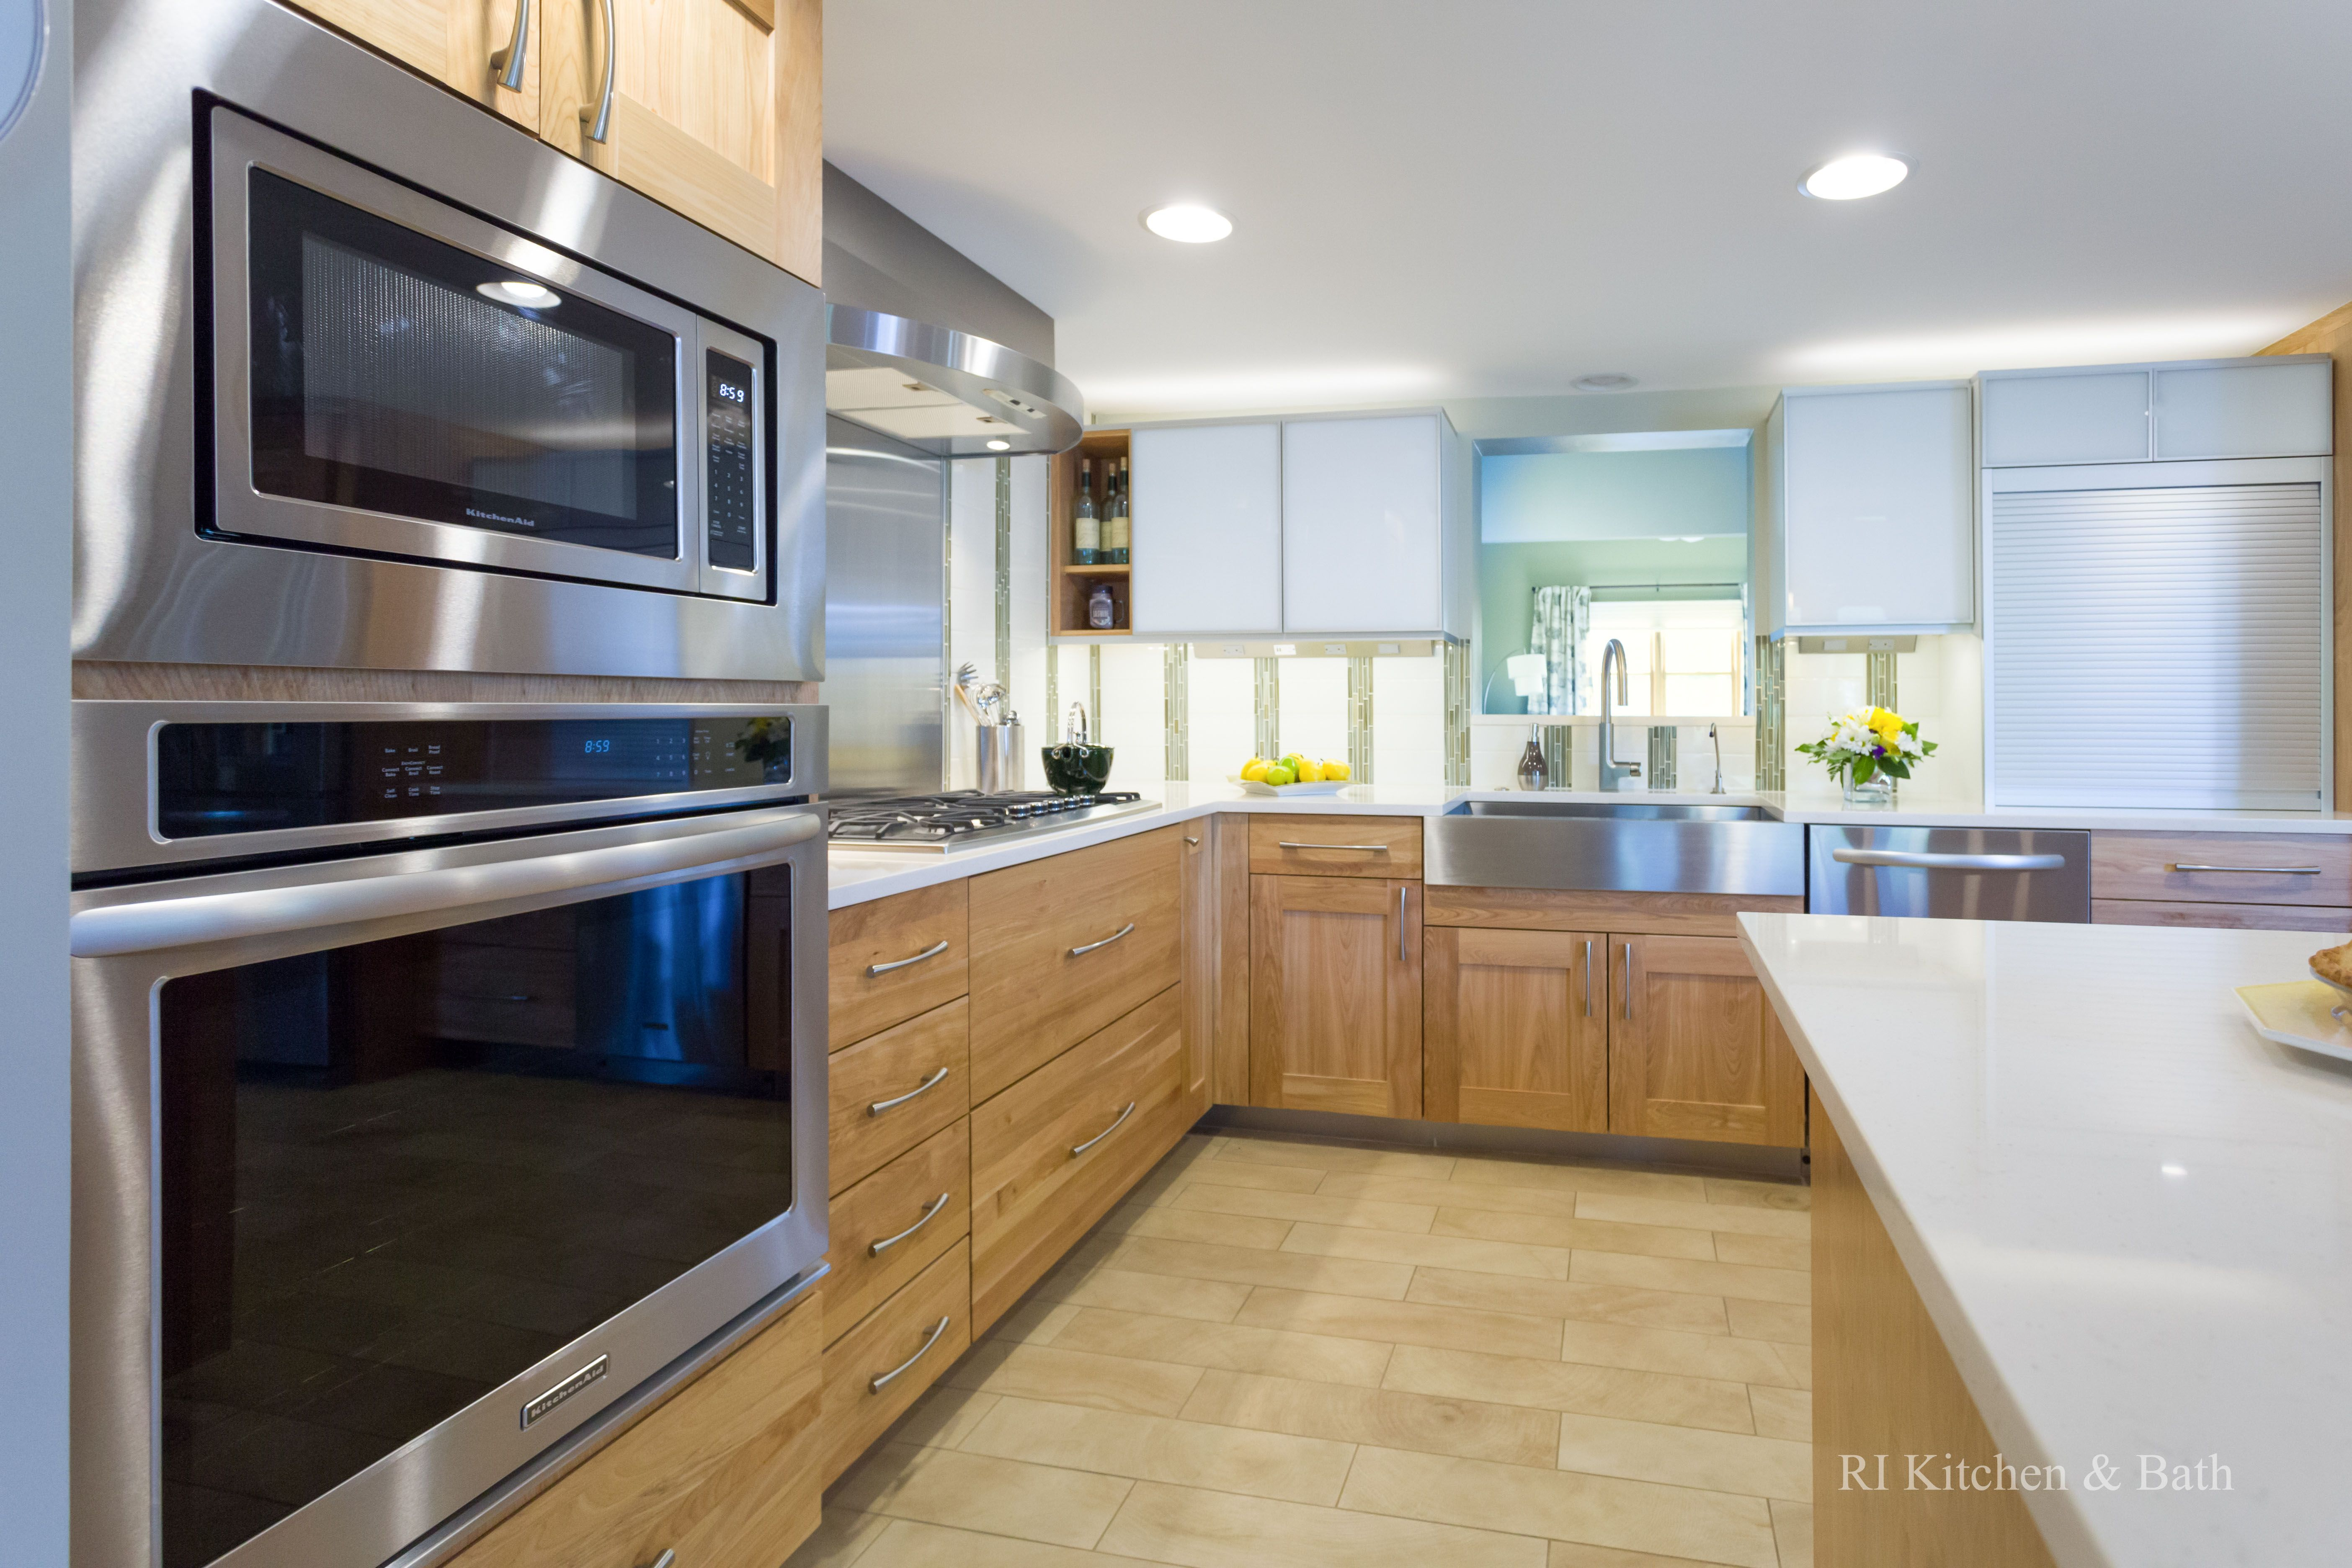 Clean Lined Contemporary Kitchen Designed By RI Kitchen U0026 Bath #RIKB  #ContemporaryKitchen #StainlessSteel